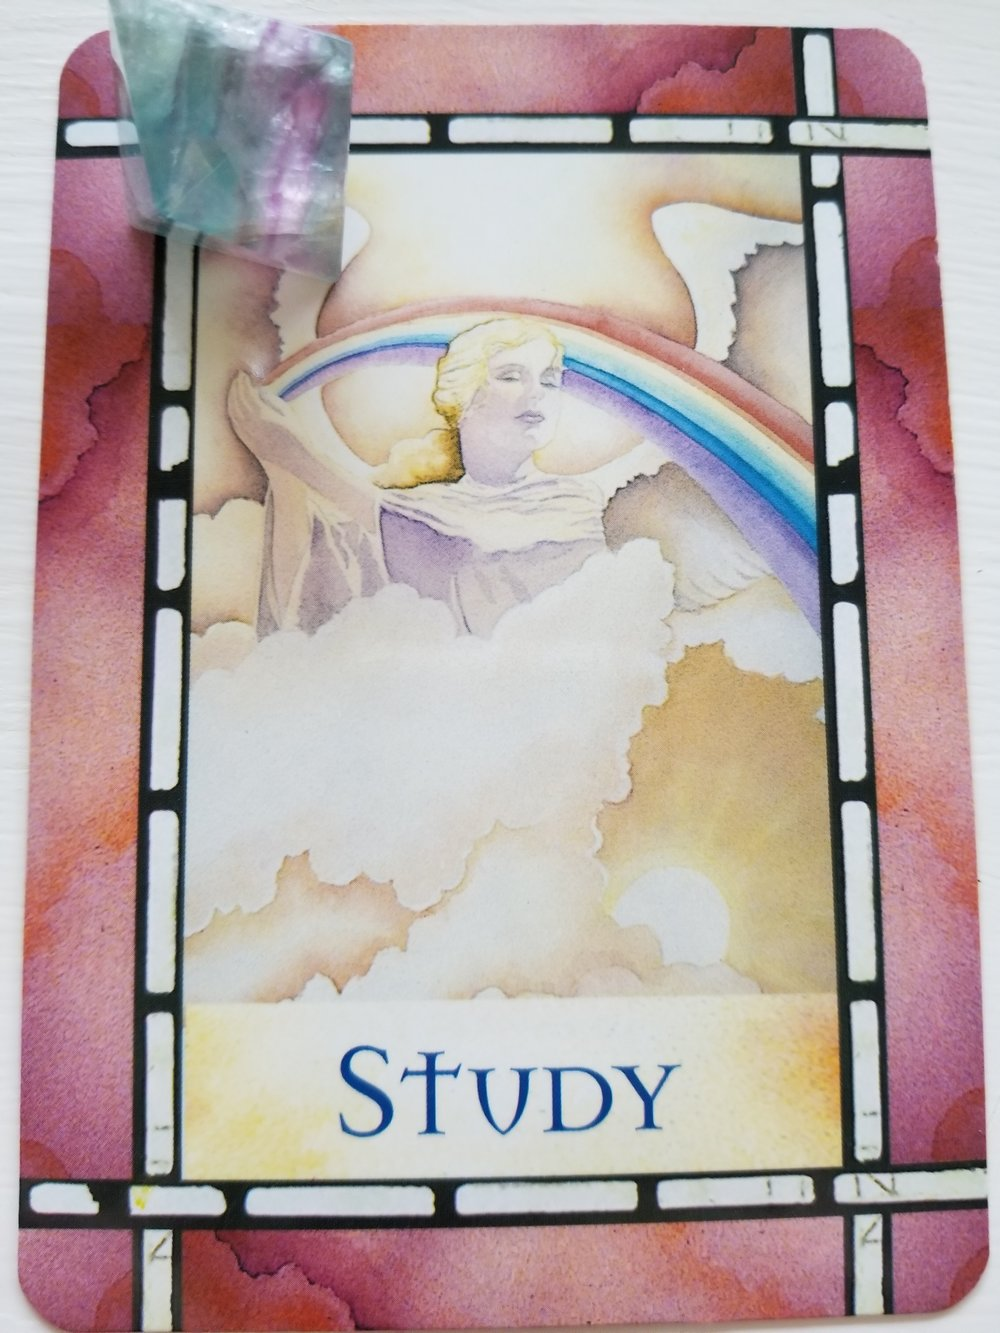 STUDY - Healing with the Angels Oracle by Doreen Virtue